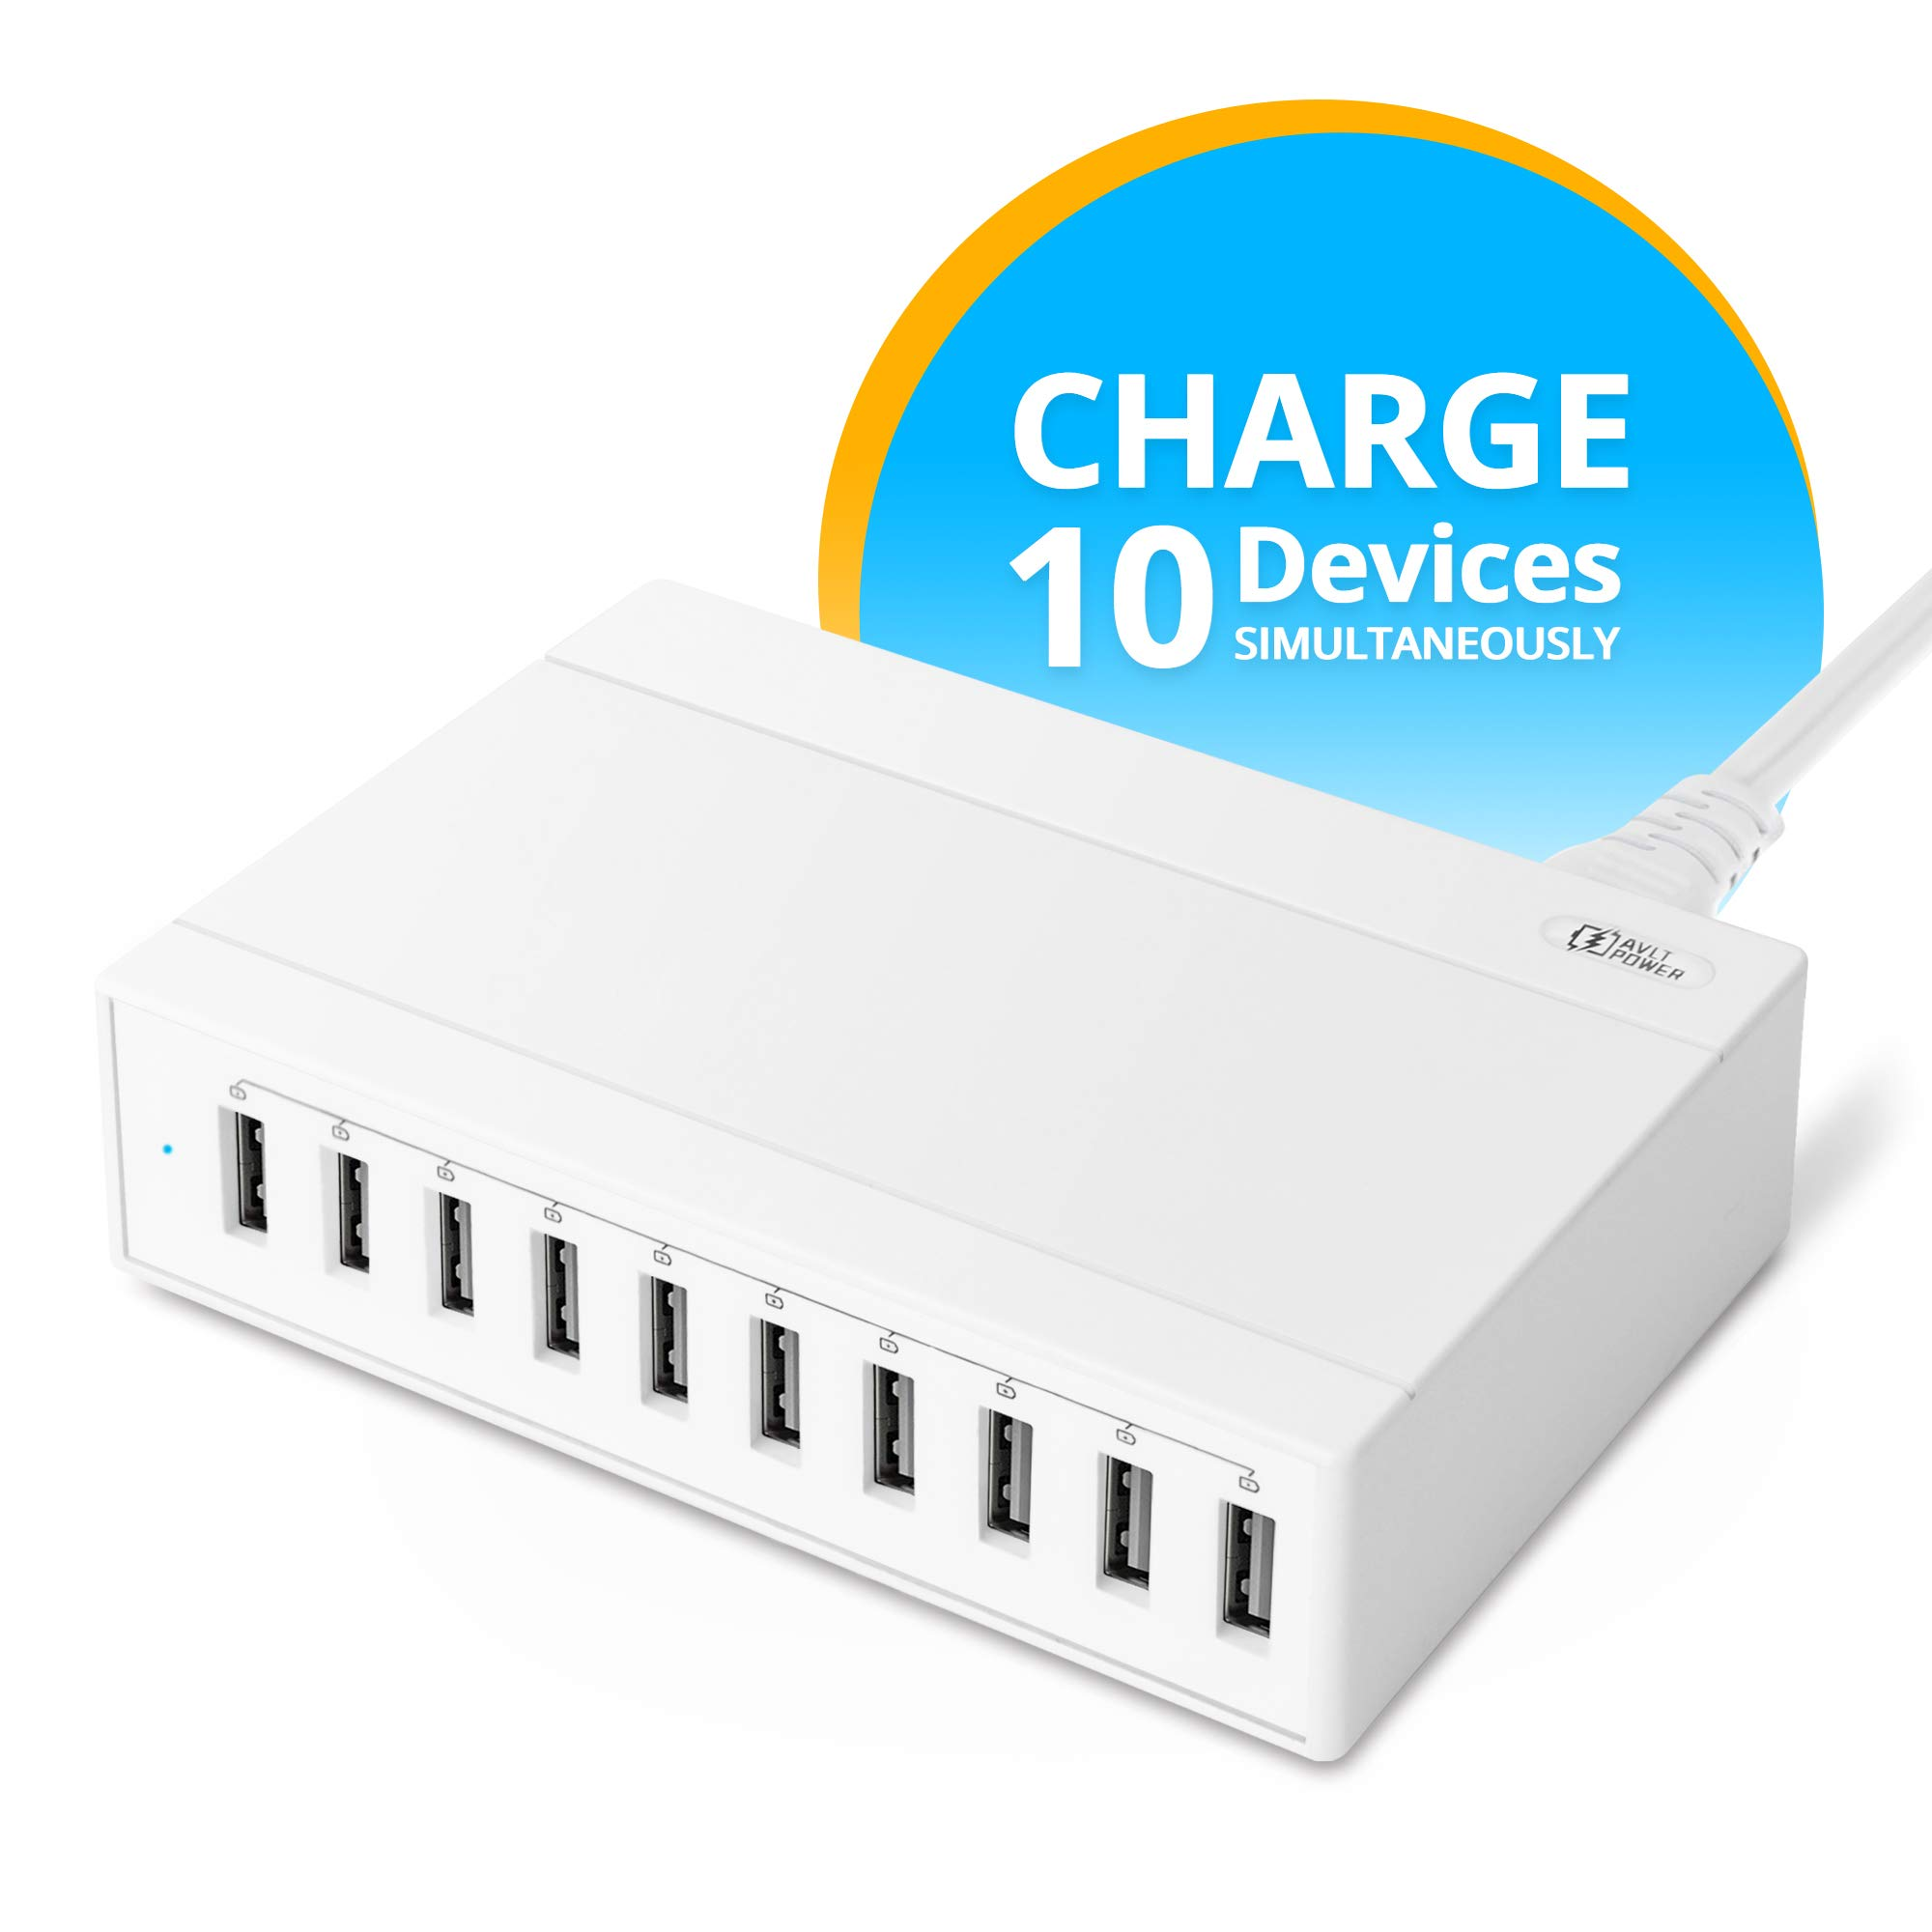 AVLT-Power 60Watt 10-Port USB Wall Charger, Portable USB Charger Multi Port for Travel, Office & Home. Compatible with iPhone, iPad, Android Phone&Tablet[White] by AVLT-Power